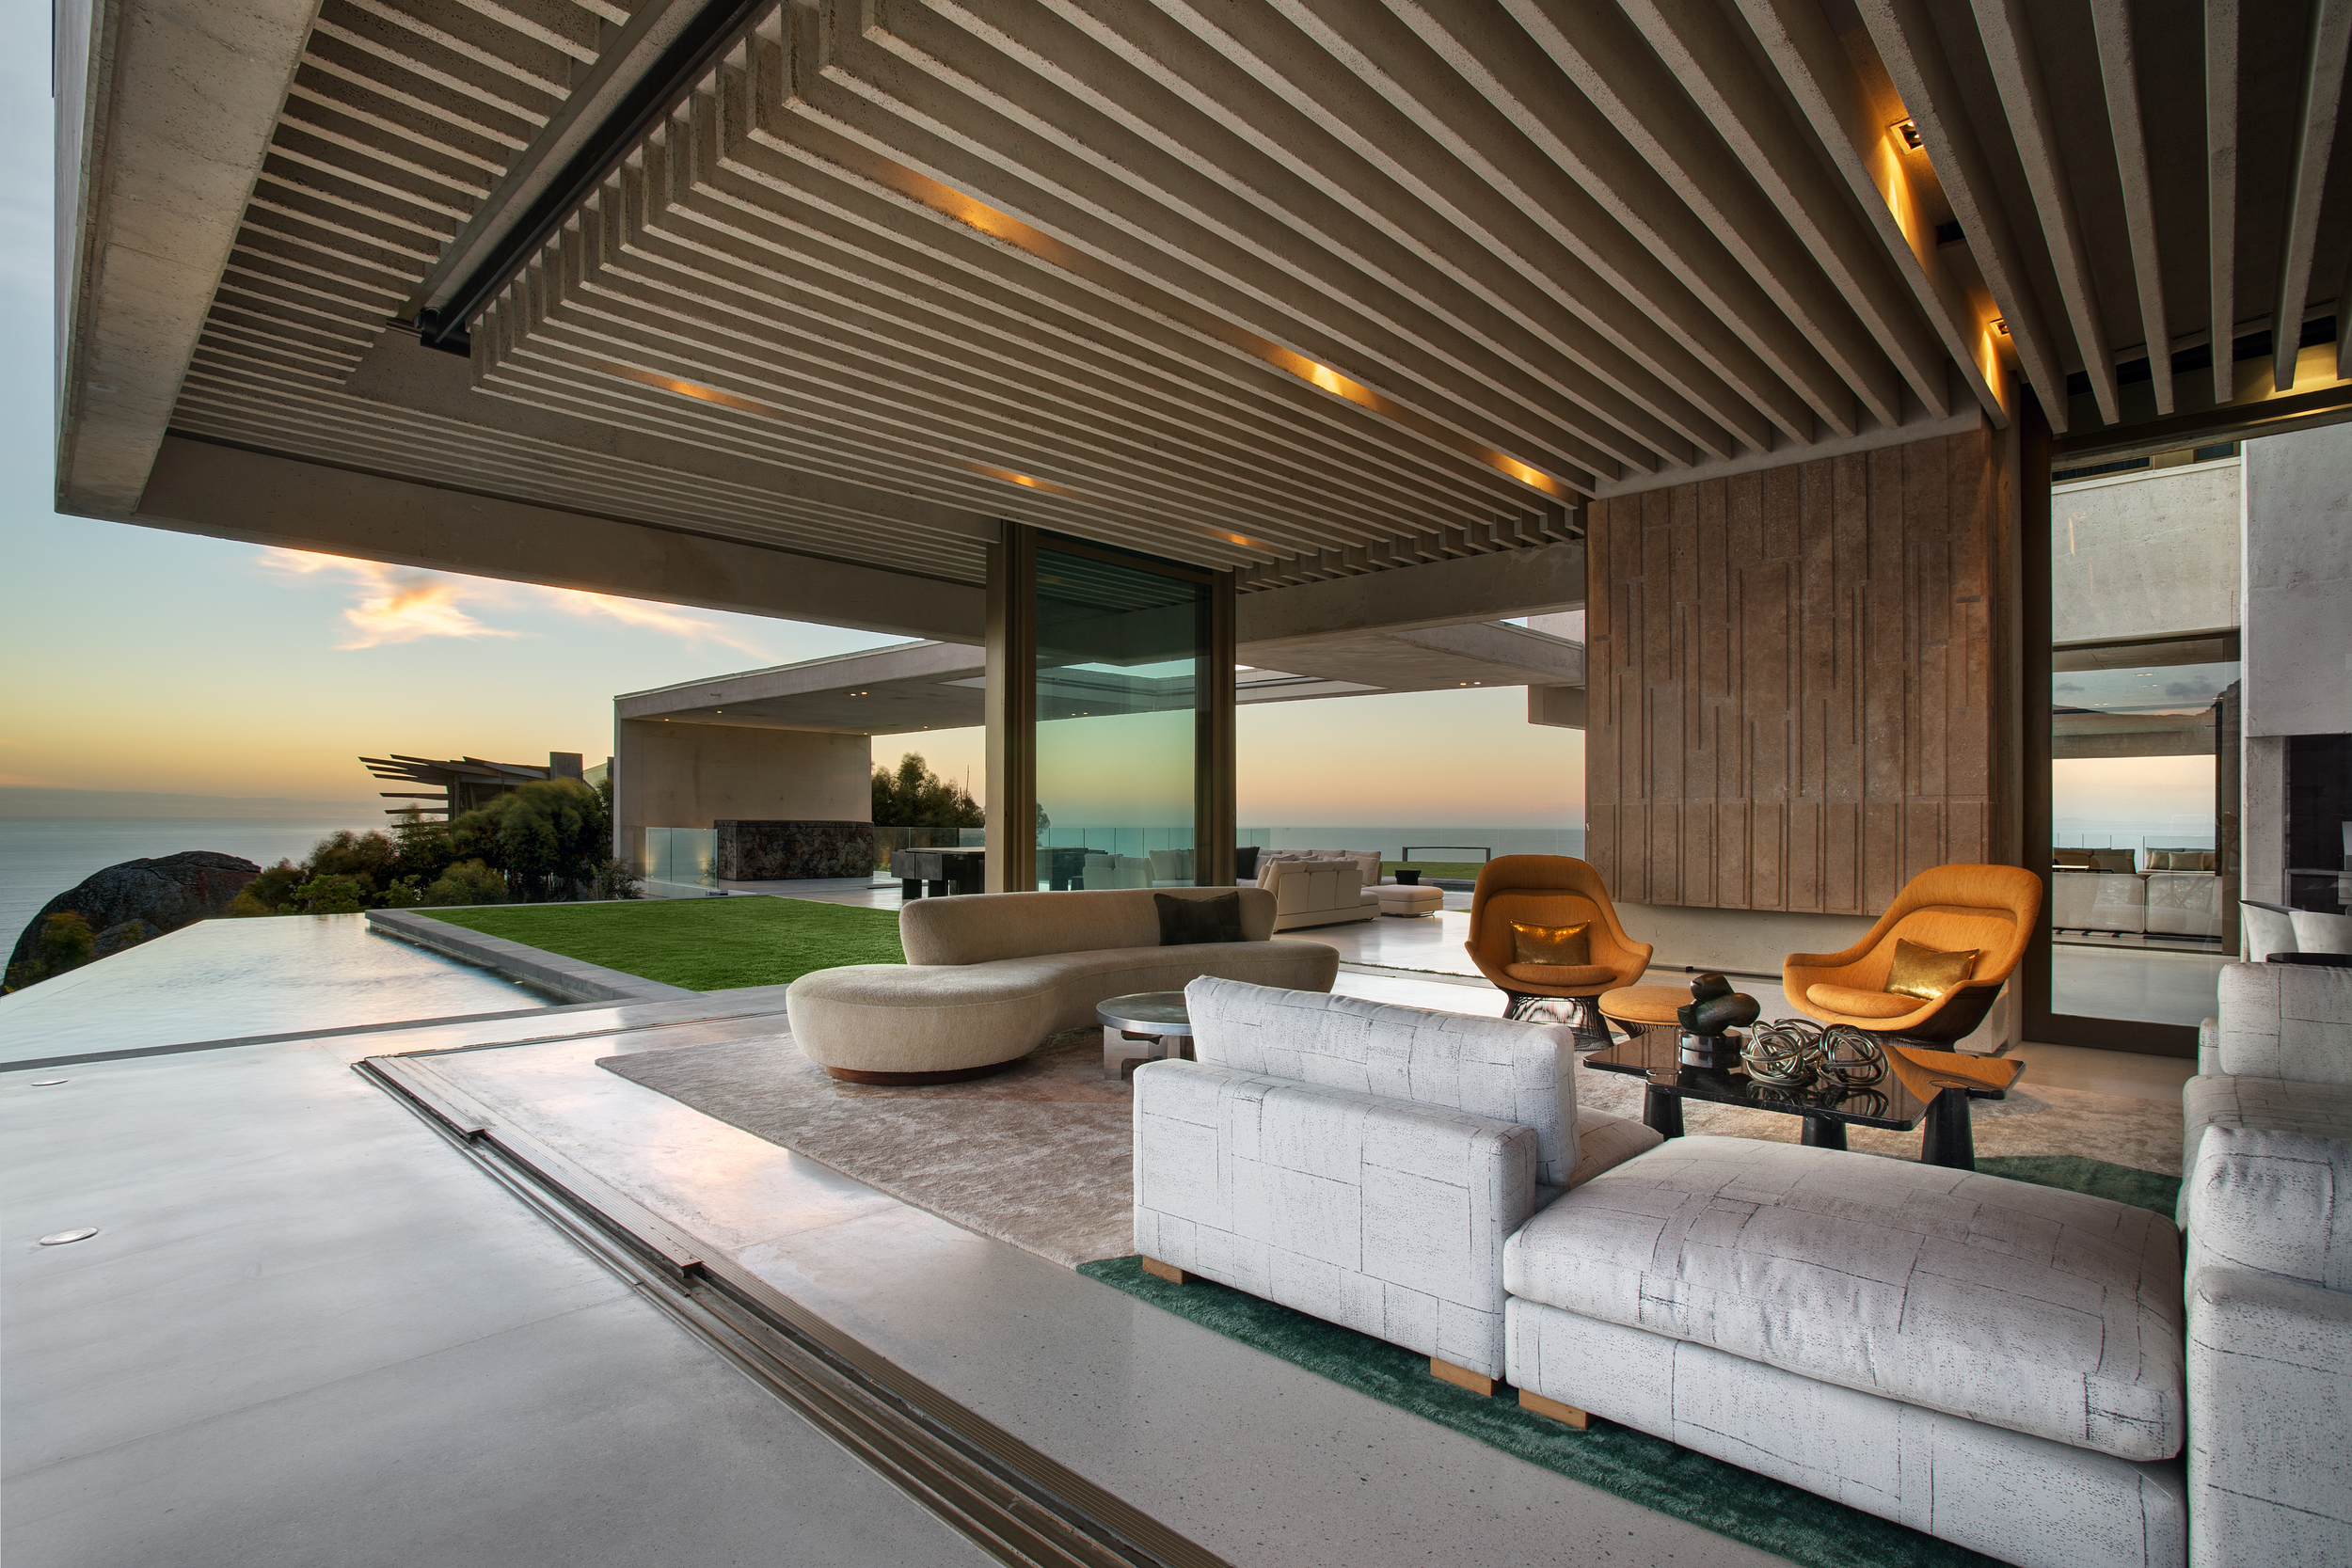 Project OVD 919's terrace opens up to the coastline and the sea views, by SAOTA